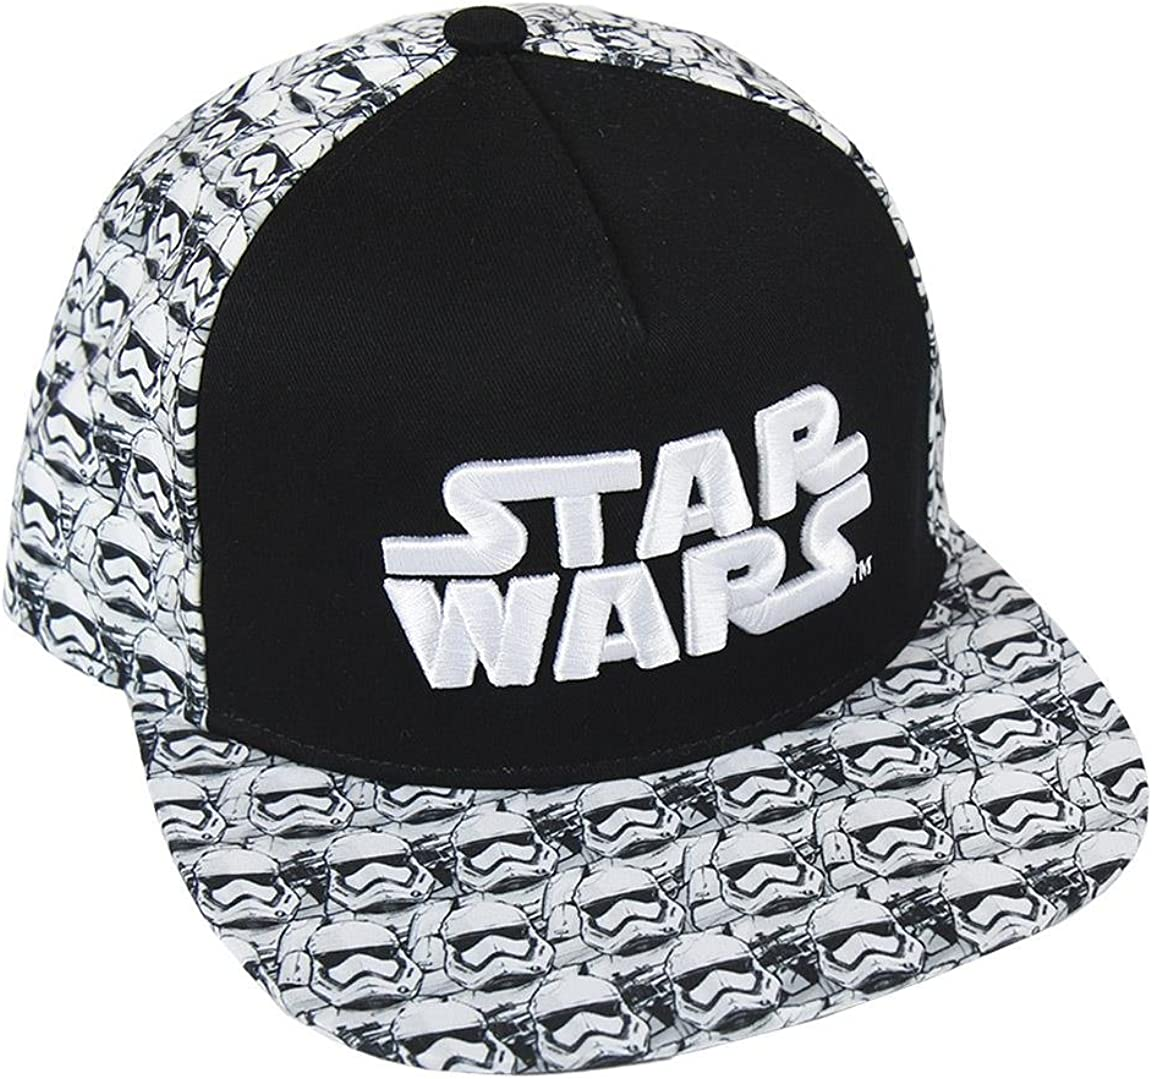 Gorra Star Wars Blanca new era 58 cm: Amazon.es: Ropa y accesorios